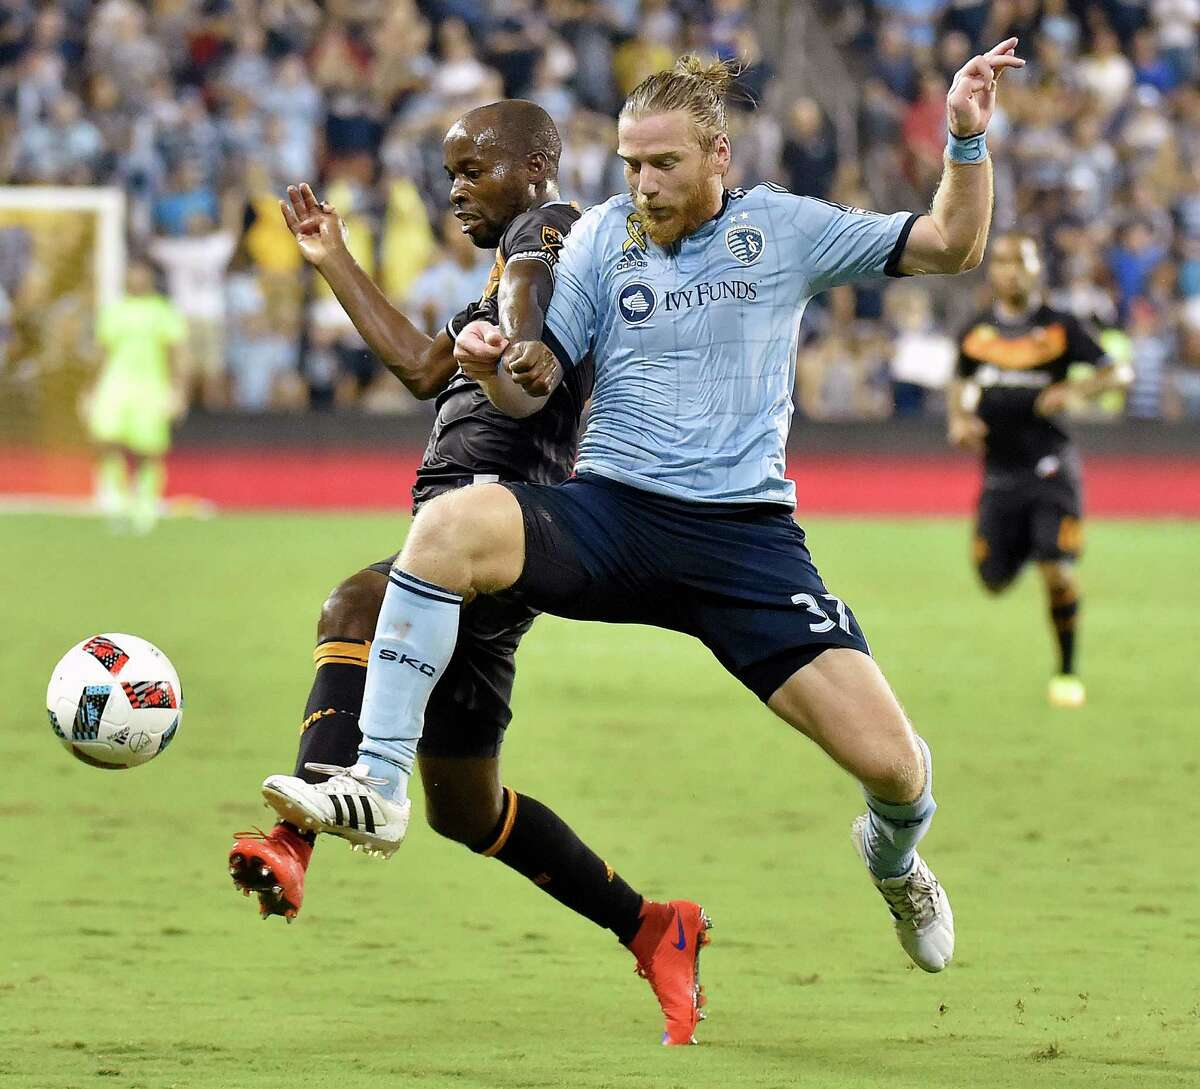 Sporting Kansas City forward Jacob Peterson and Houston Dynamo midfielder DaMarcus Beasley, left, battle for control of the ball in the second half of a 3-3 draw on Friday, Sept. 9, 2016, at Children's Mercy Park in Kansas City, Kan.